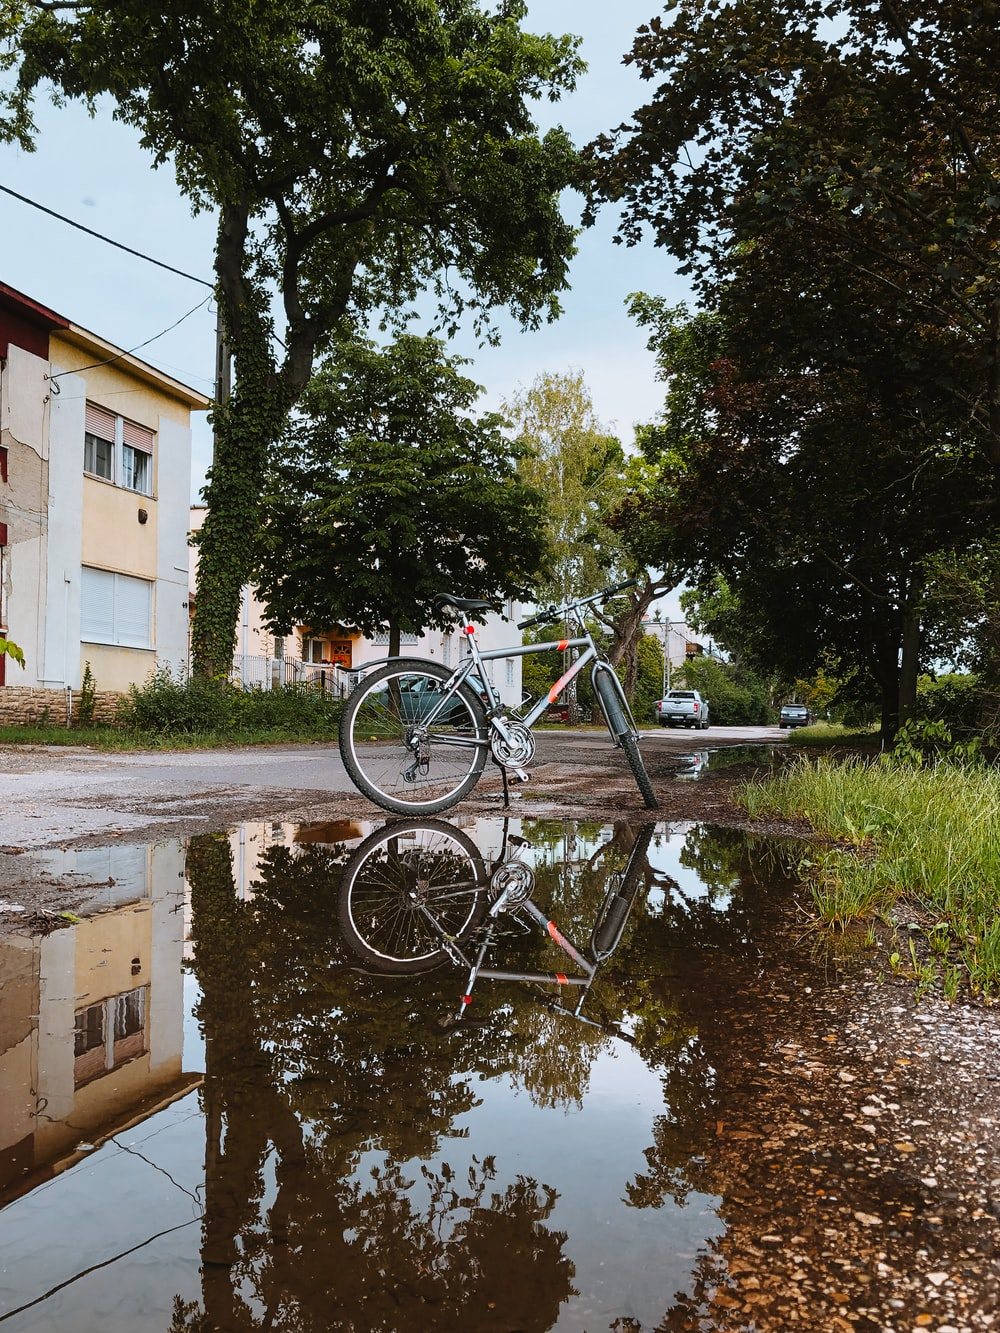 black bicycle parked beside green tree near body of water during daytime